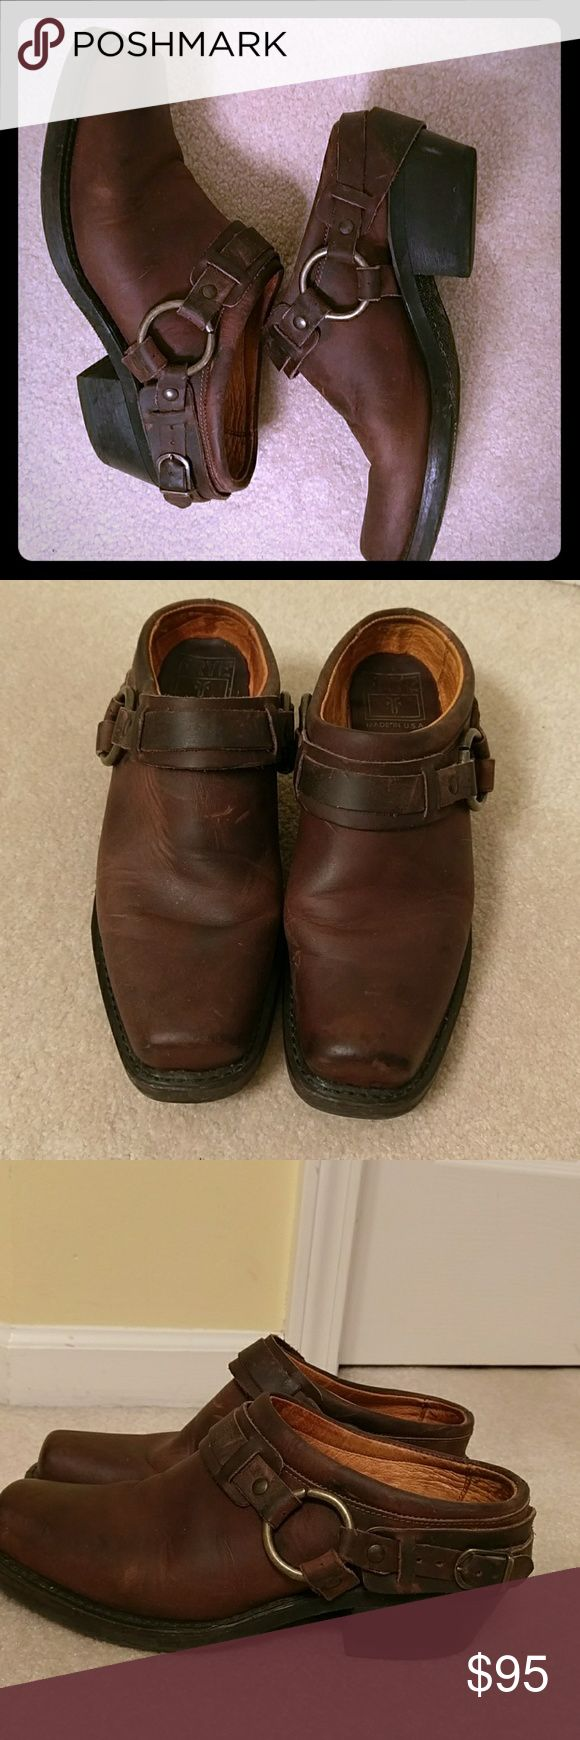 Frye Belted Harness Mule Clog Frye leather belted mule clog. Motorcycle mule style. They have been much loved, with minor scuff marks which add to the charm of Frye. In excellent pre-used condition. Fit true to size. No trades. Frye Shoes Mules & Clogs